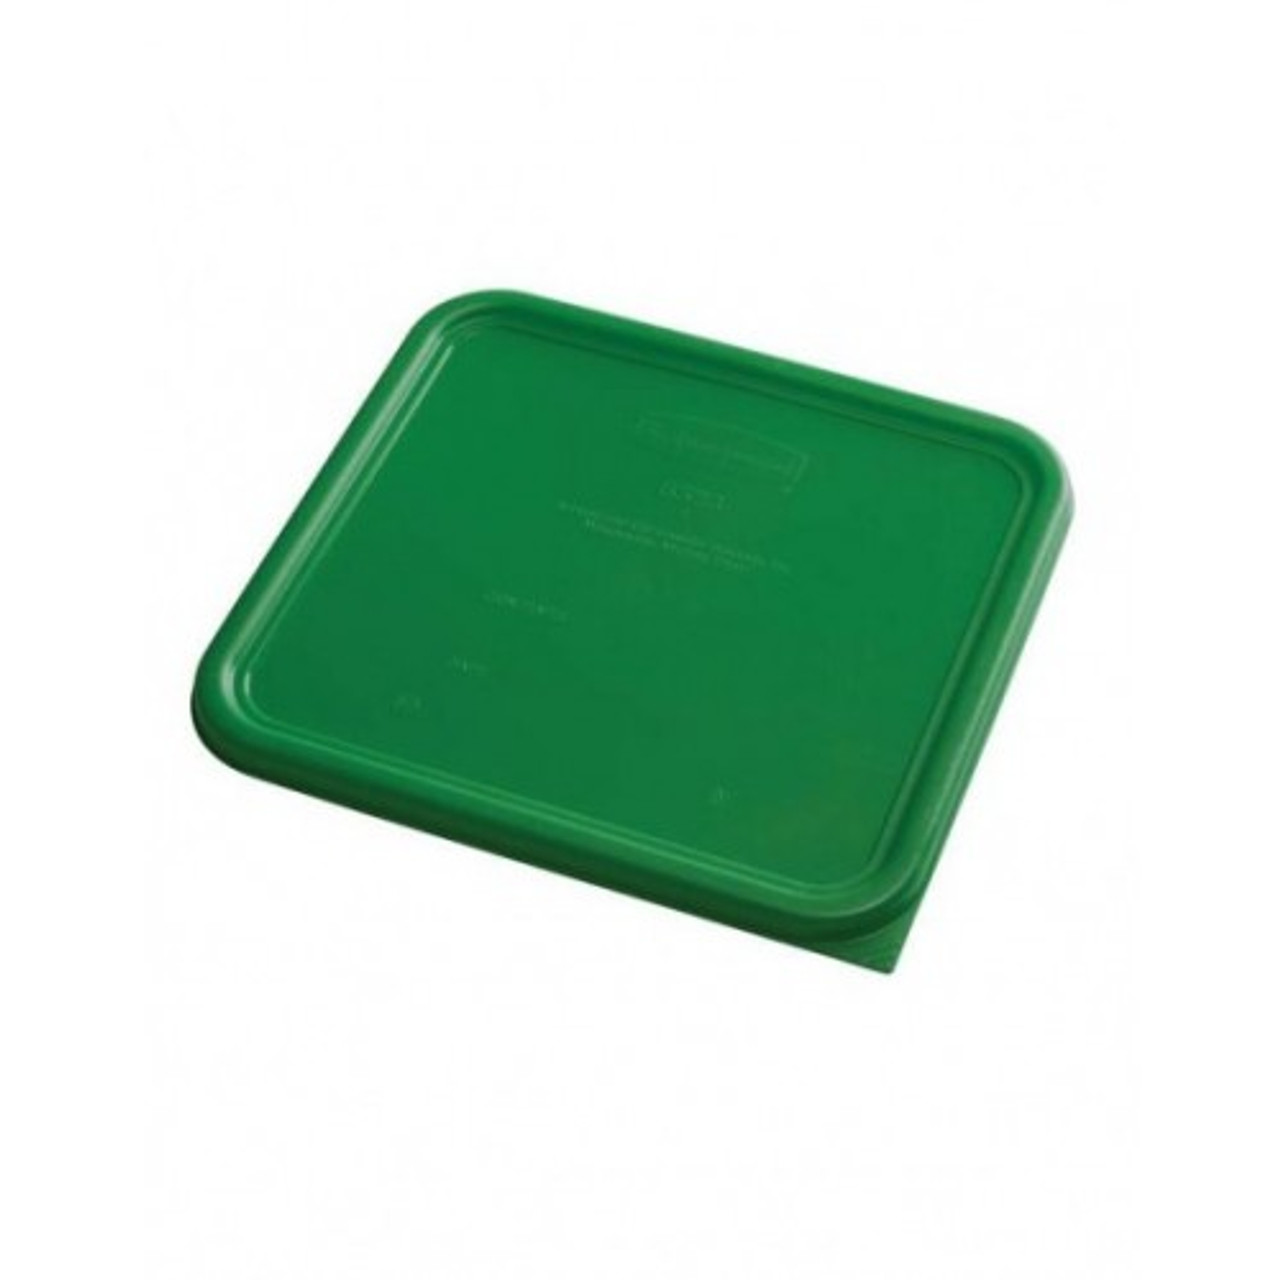 Rubbermaid Square Container Lid - Small Green - 1980301